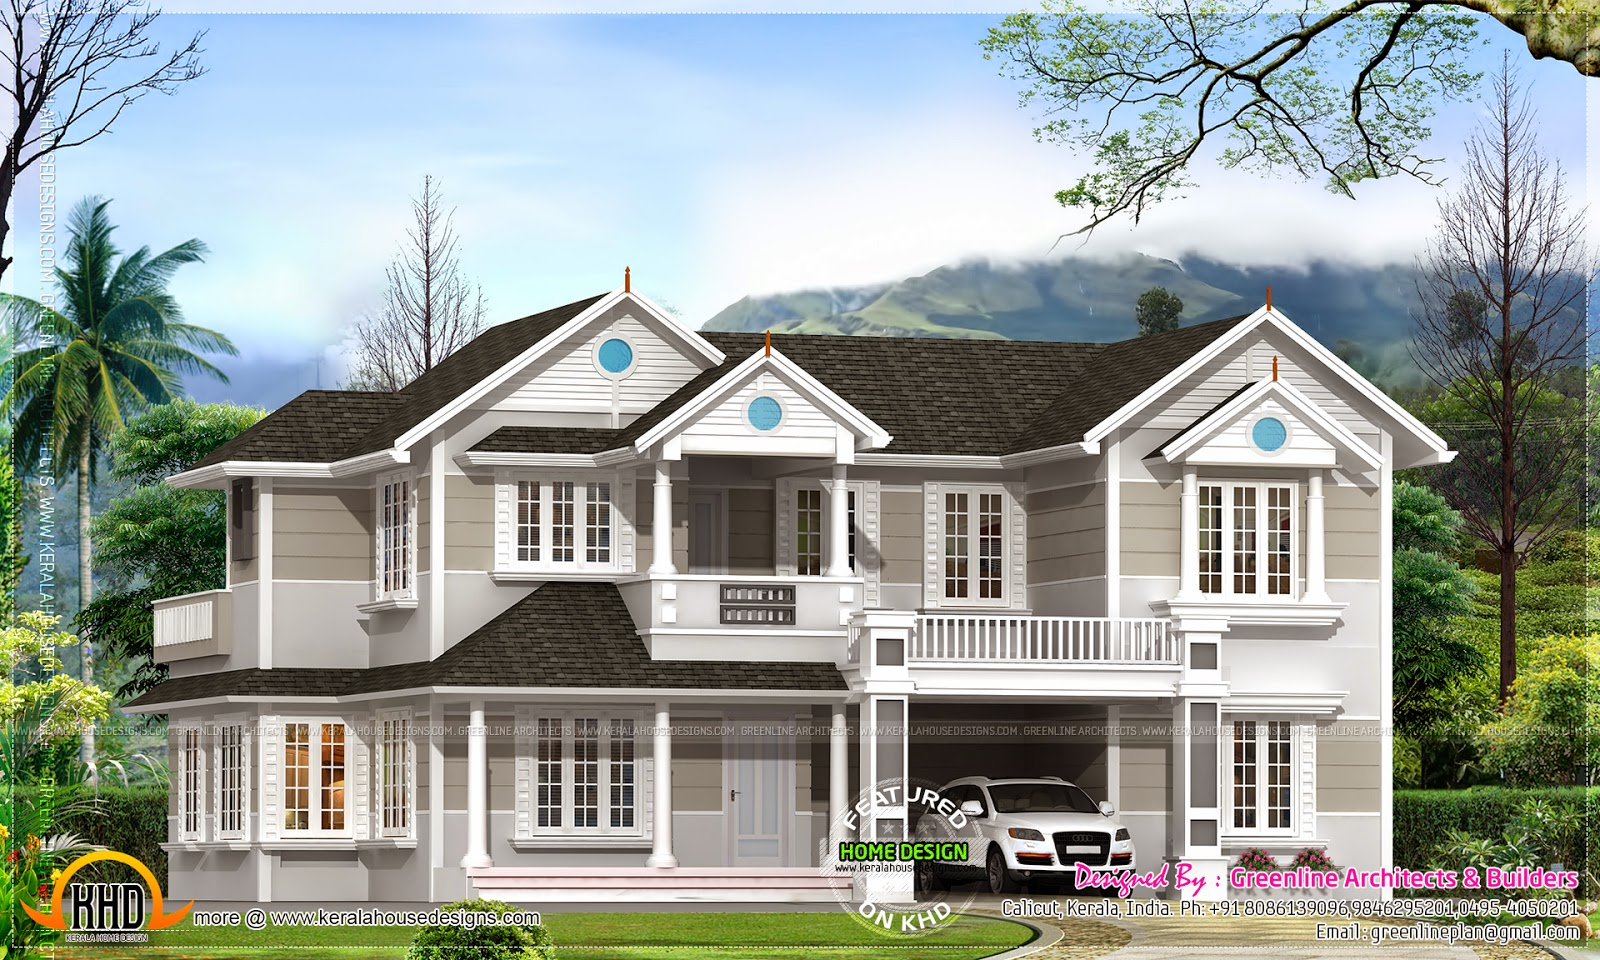 Colonial house plan kerala home design and floor plans for Historic home plans